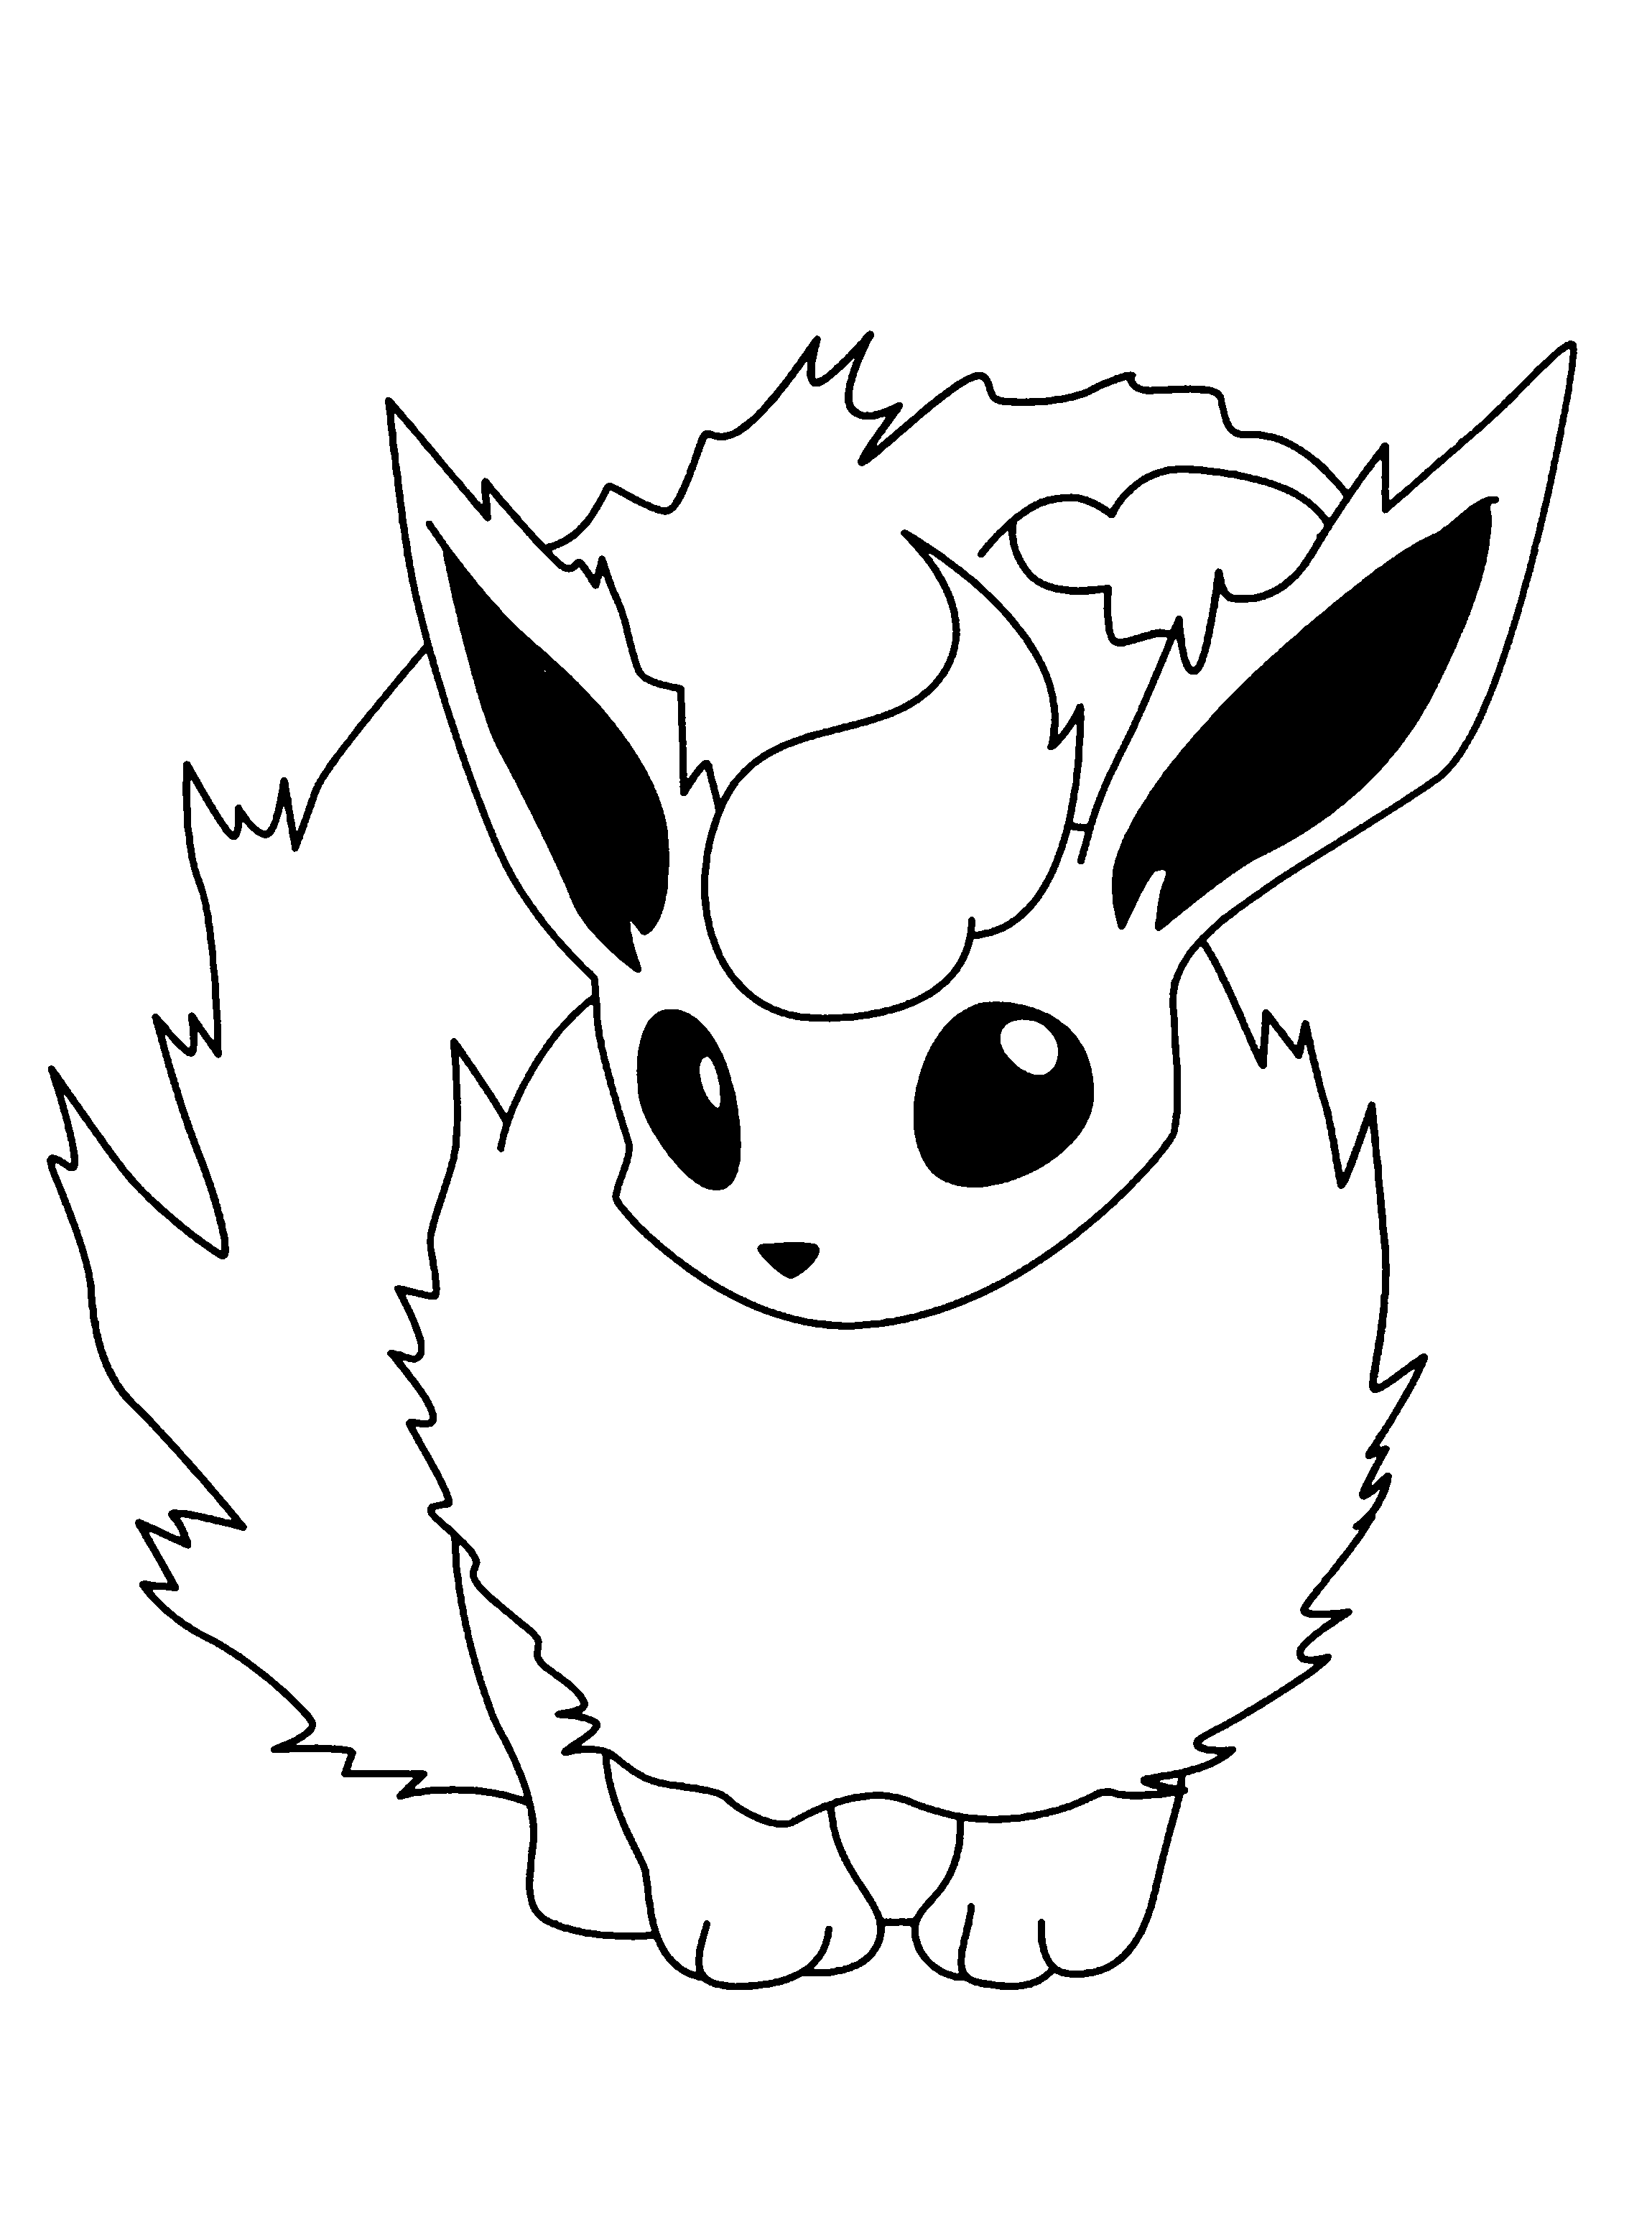 pokemon pictures of pokemon black and white free pokemon coloring pages for kids 2016 white of pictures pokemon pokemon black and